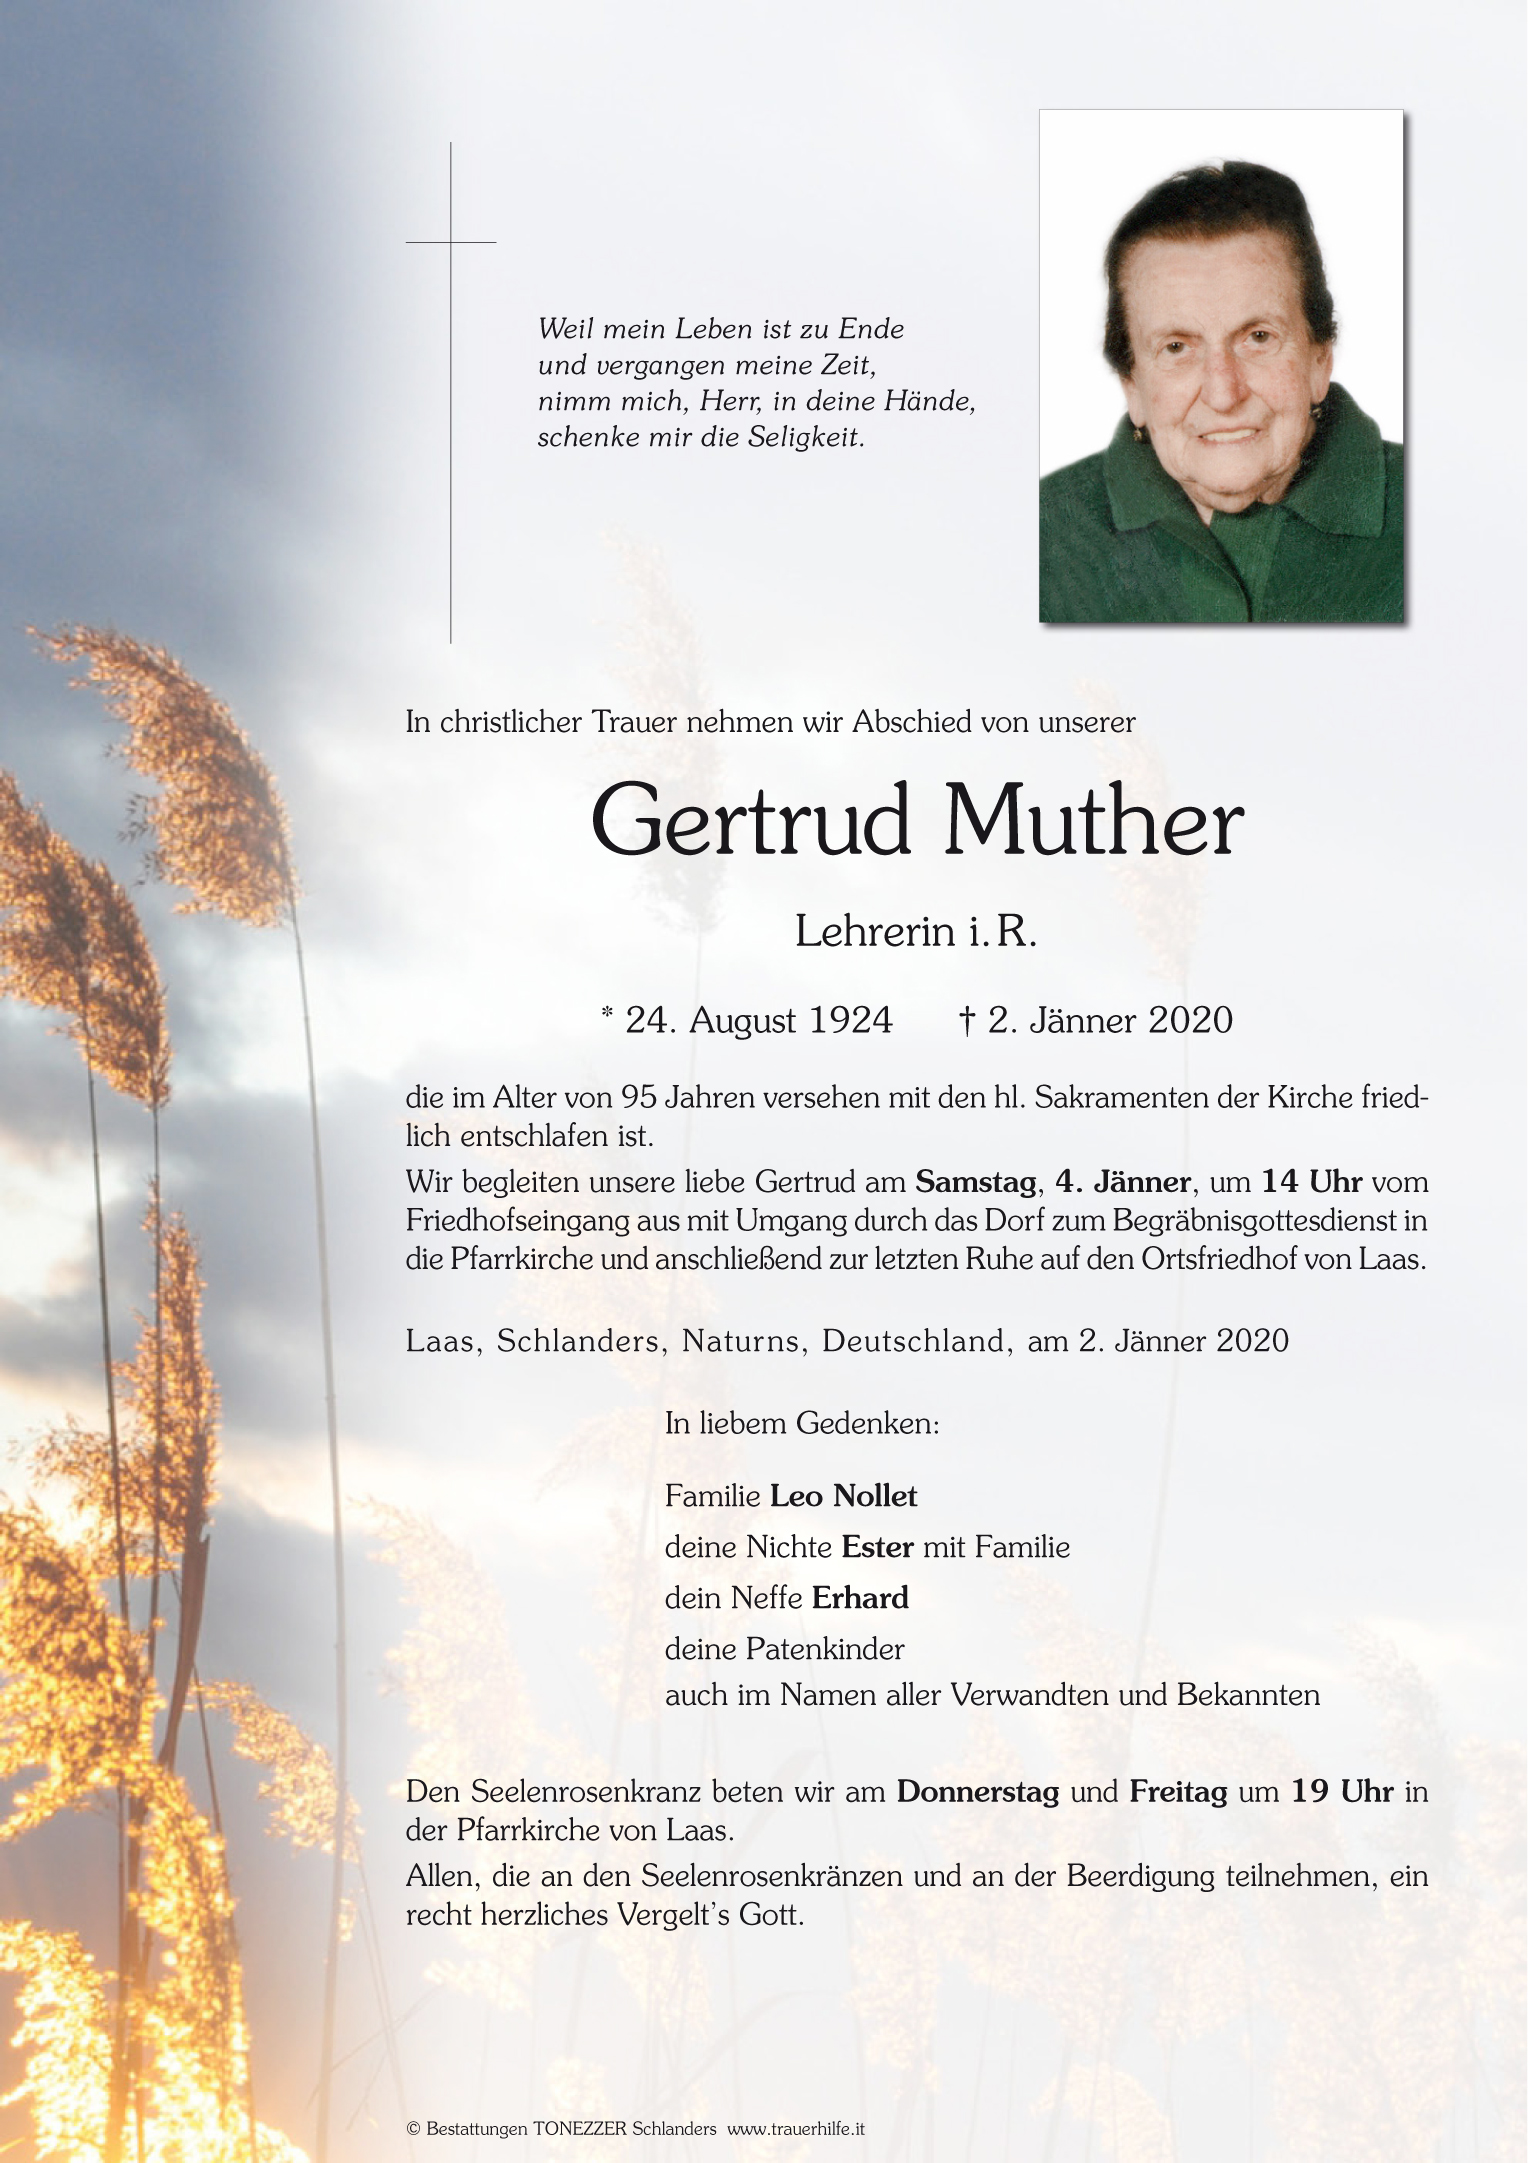 Gertrud Muther